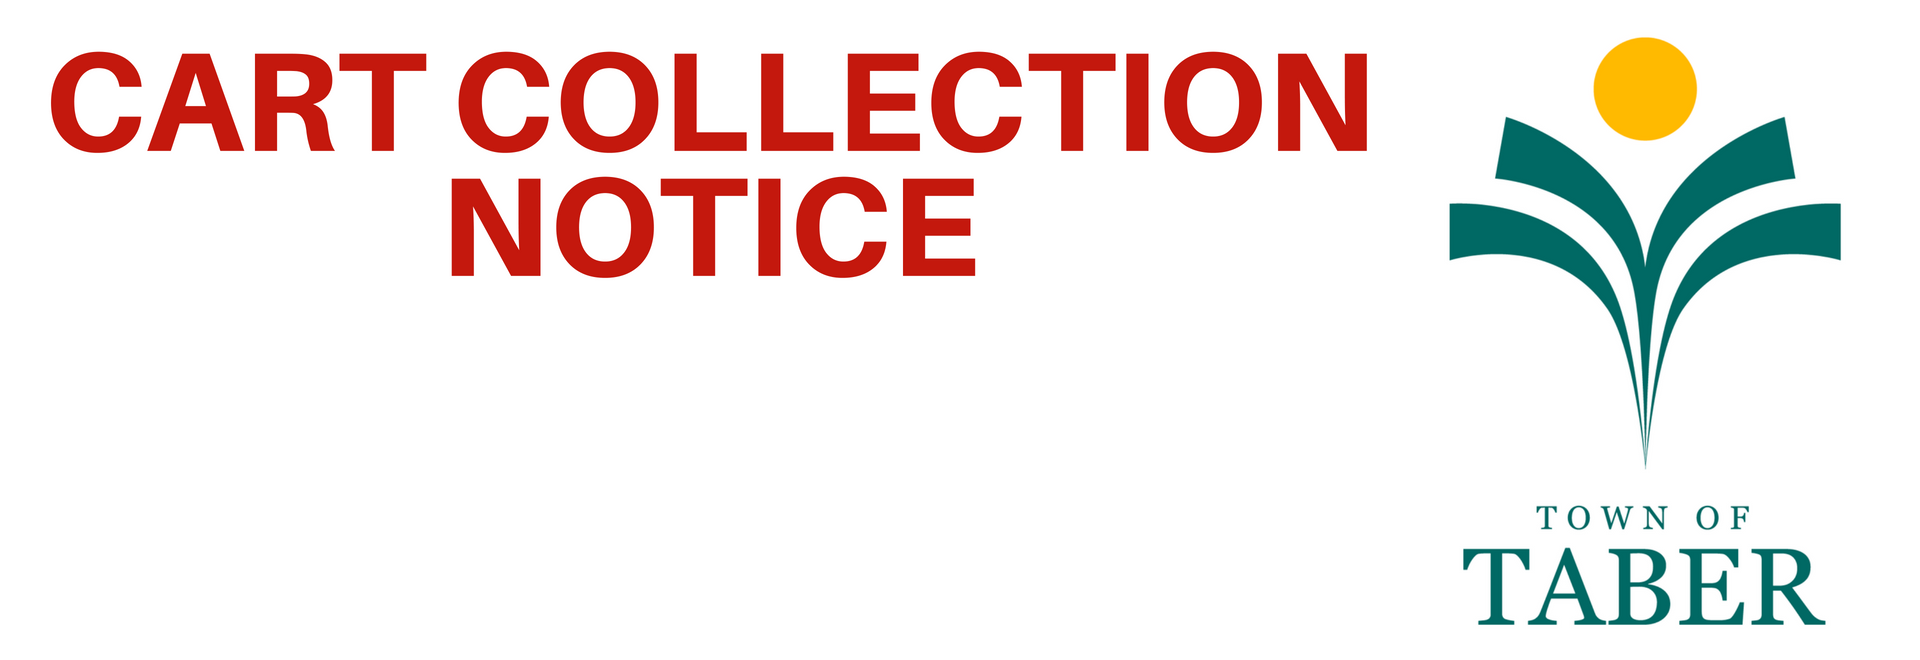 Collection Cart Notice